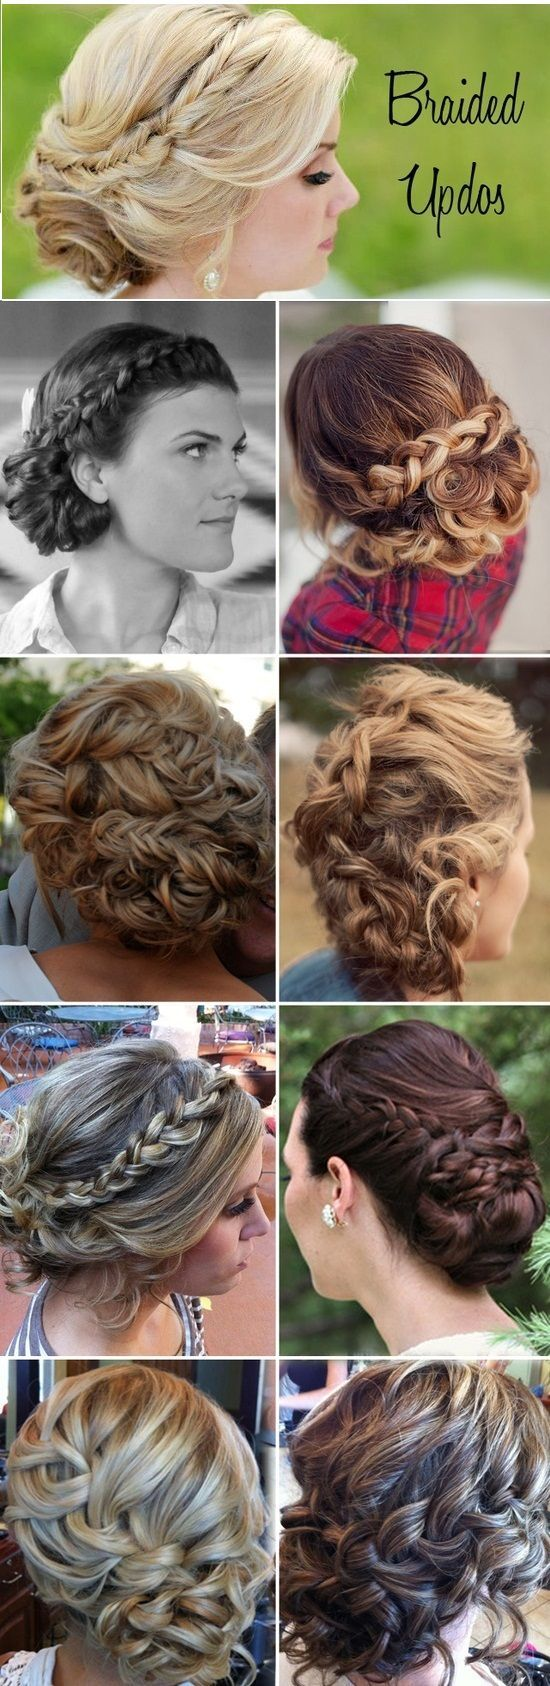 Updo Hairstyles using braids. Really nice stuff!!